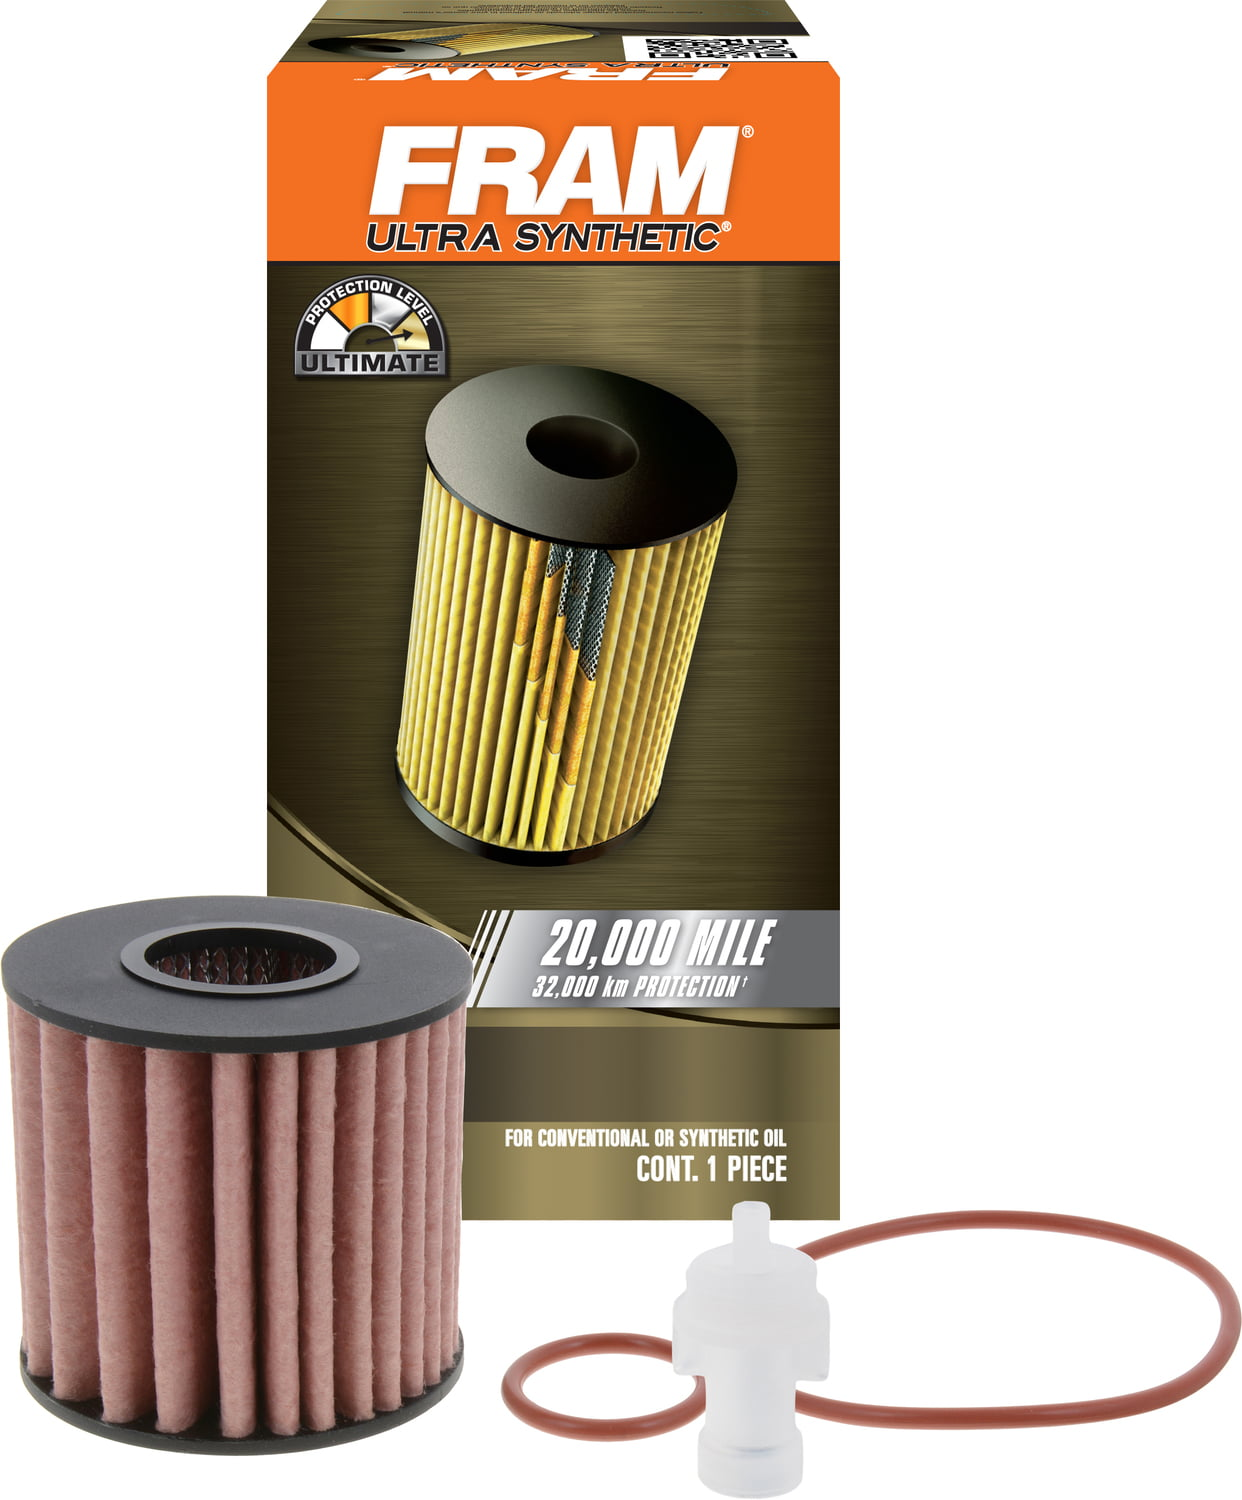 [ZSVE_7041]  FRAM Ultra Synthetic Filter XG9972, 20K mile Change Interval Oil Filter -  Walmart.com - Walmart.com | Fram Fuel Filter Catalog |  | Walmart.com